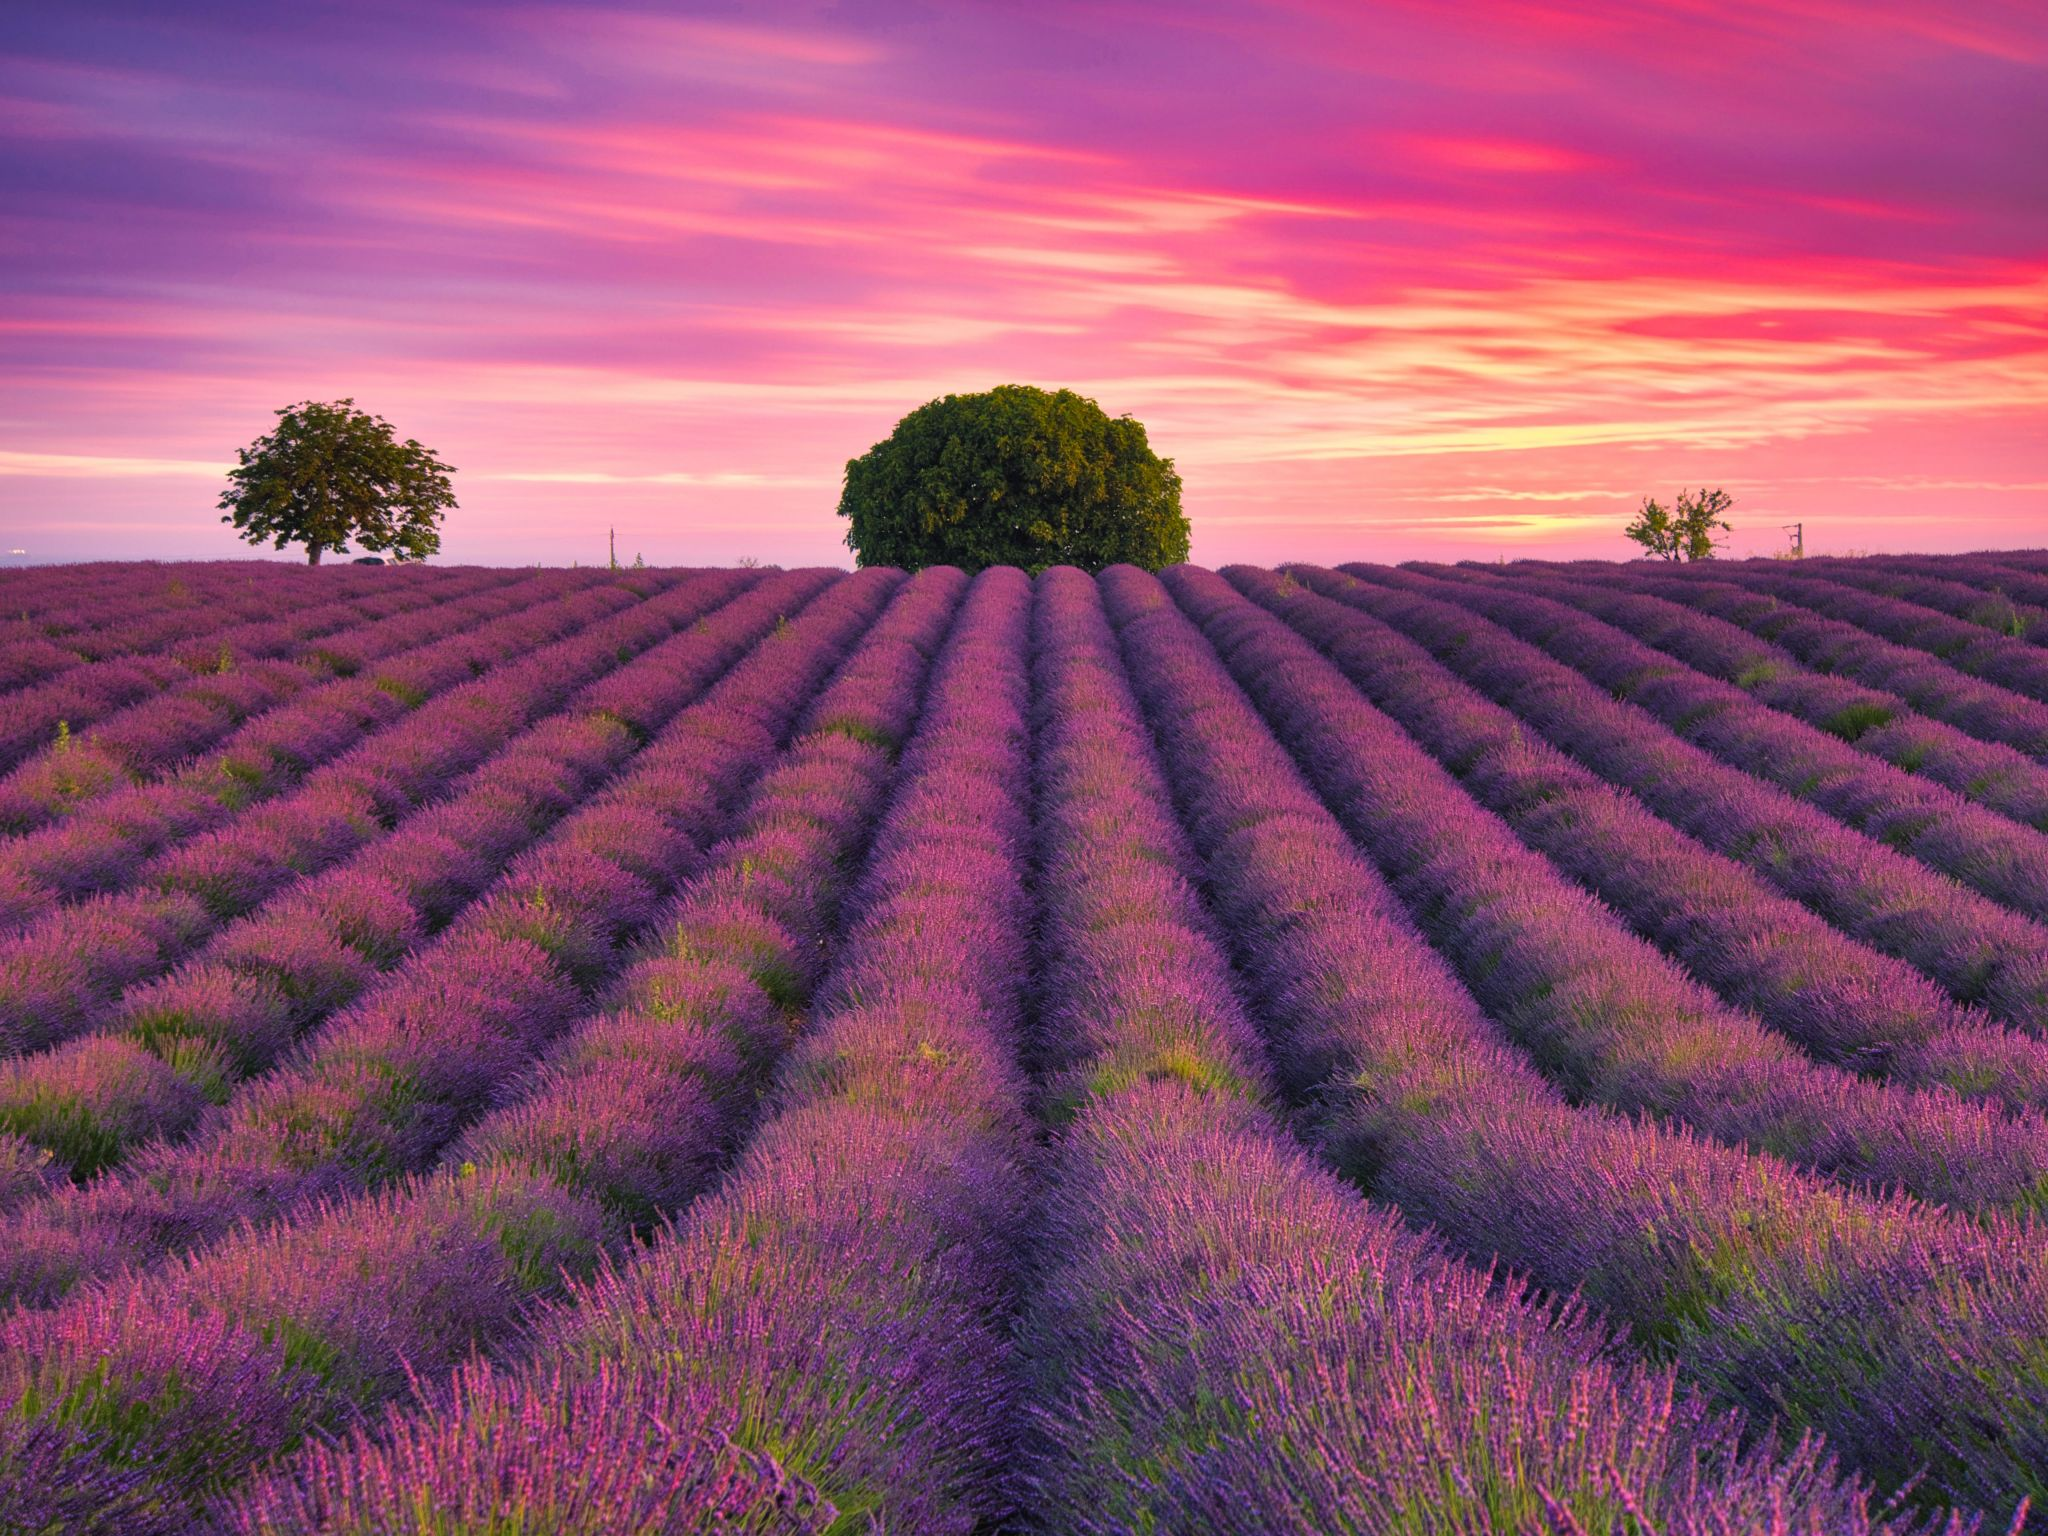 Valensole - The 3 Sisters, France